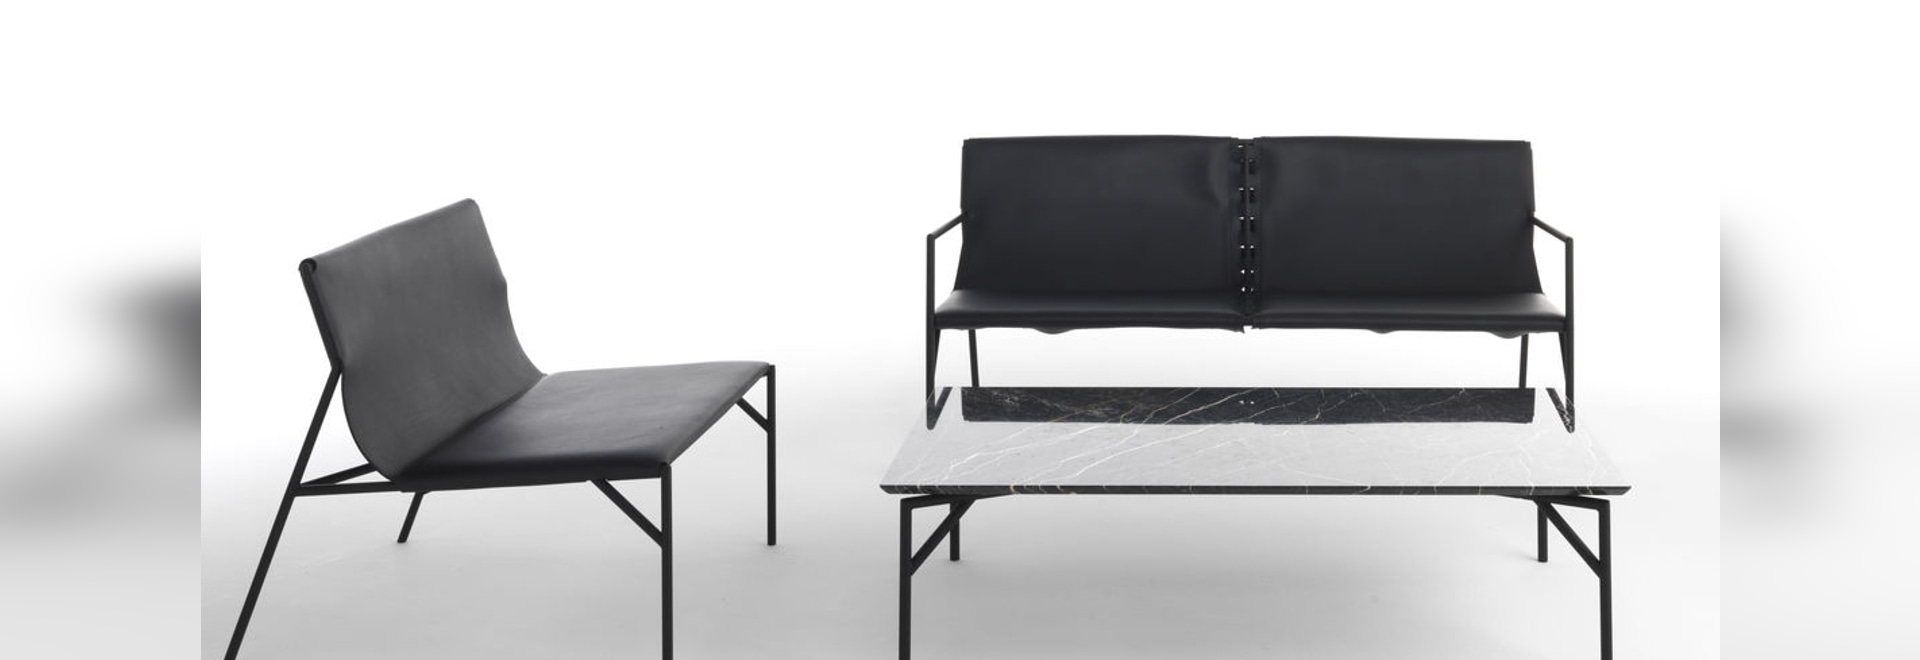 NEW: coffee table by HORM.IT